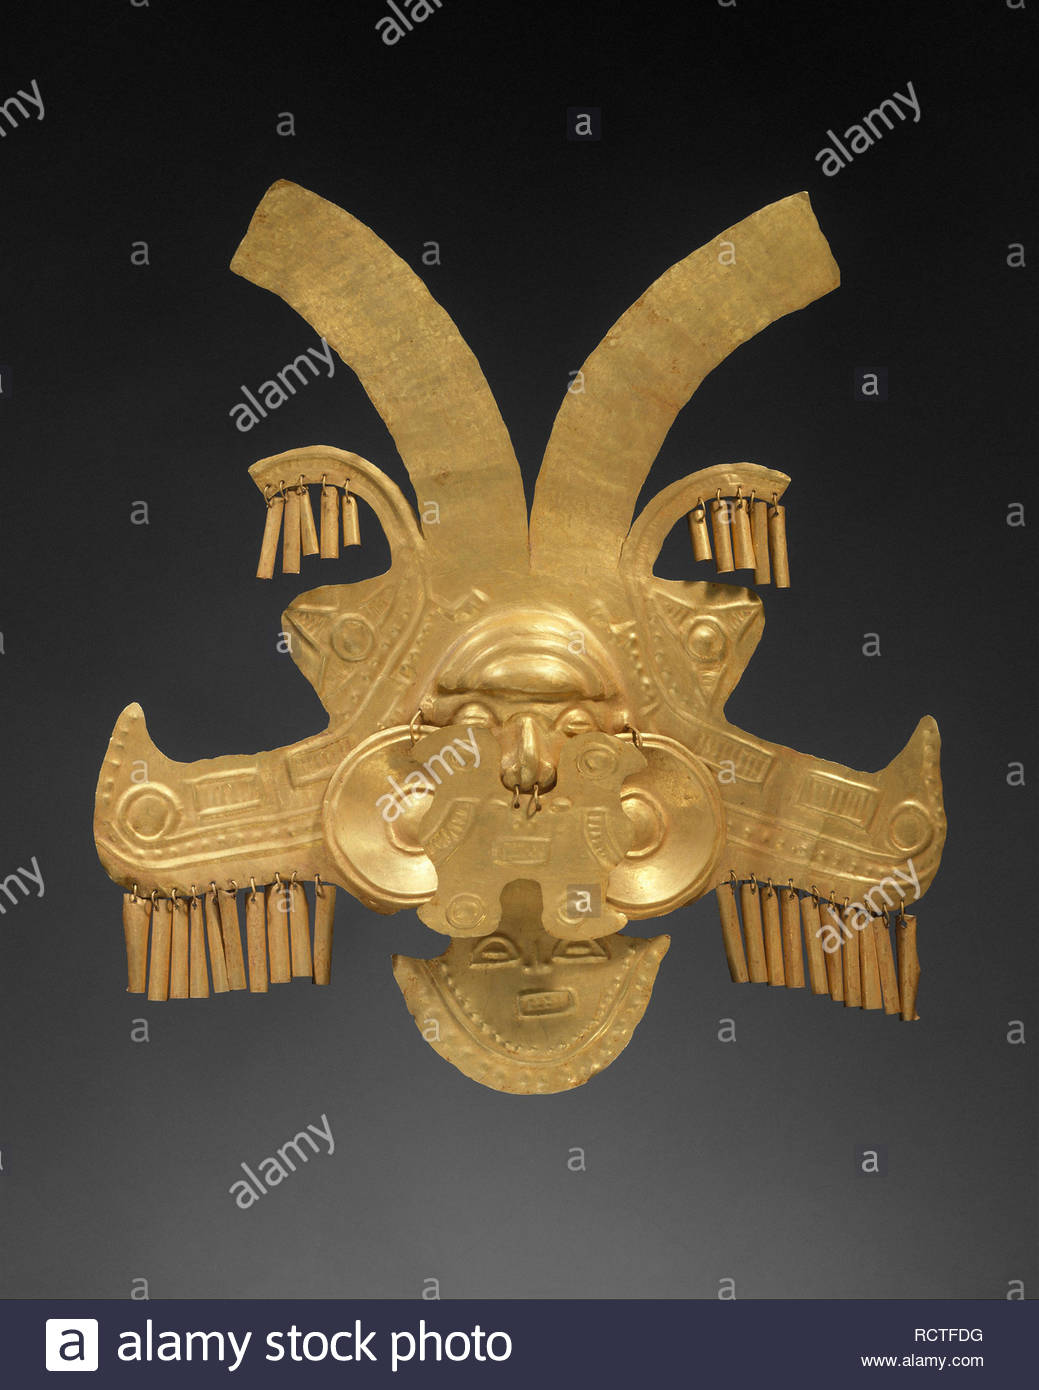 Headdress Ornament, 1st–7th century, Colombia, Calima (Yotoco), Gold, H. 10 x W. 9 3/8 in. (25.4 x 23.8 cm), Metal-Ornaments, Elaborate ornaments like the present example expressed the wealth and status of the wearer. Worn attached to a turban, basketry headdress, or other form of textile construction, it would have offered a spectacular sight when in motion with its many free-swinging surfaces. Stock Photo